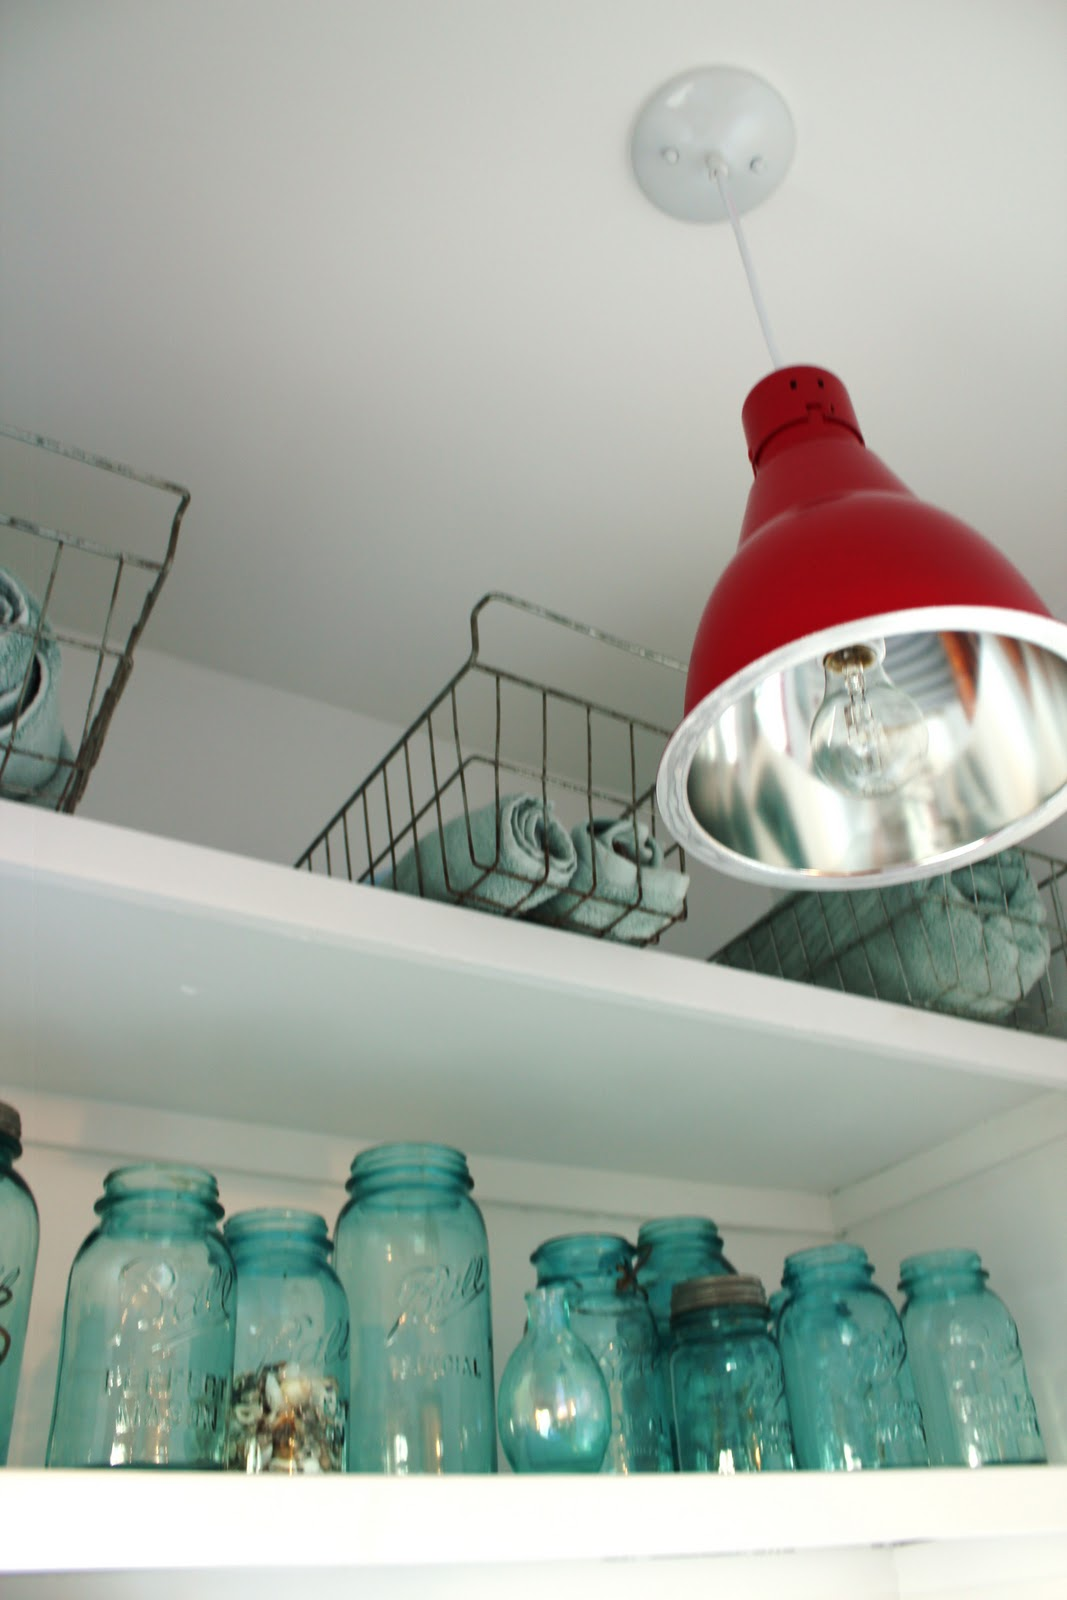 west elm, industrial, pendant lights, salvaged, red pendant light, industrail hanging lighting, bathroom lights